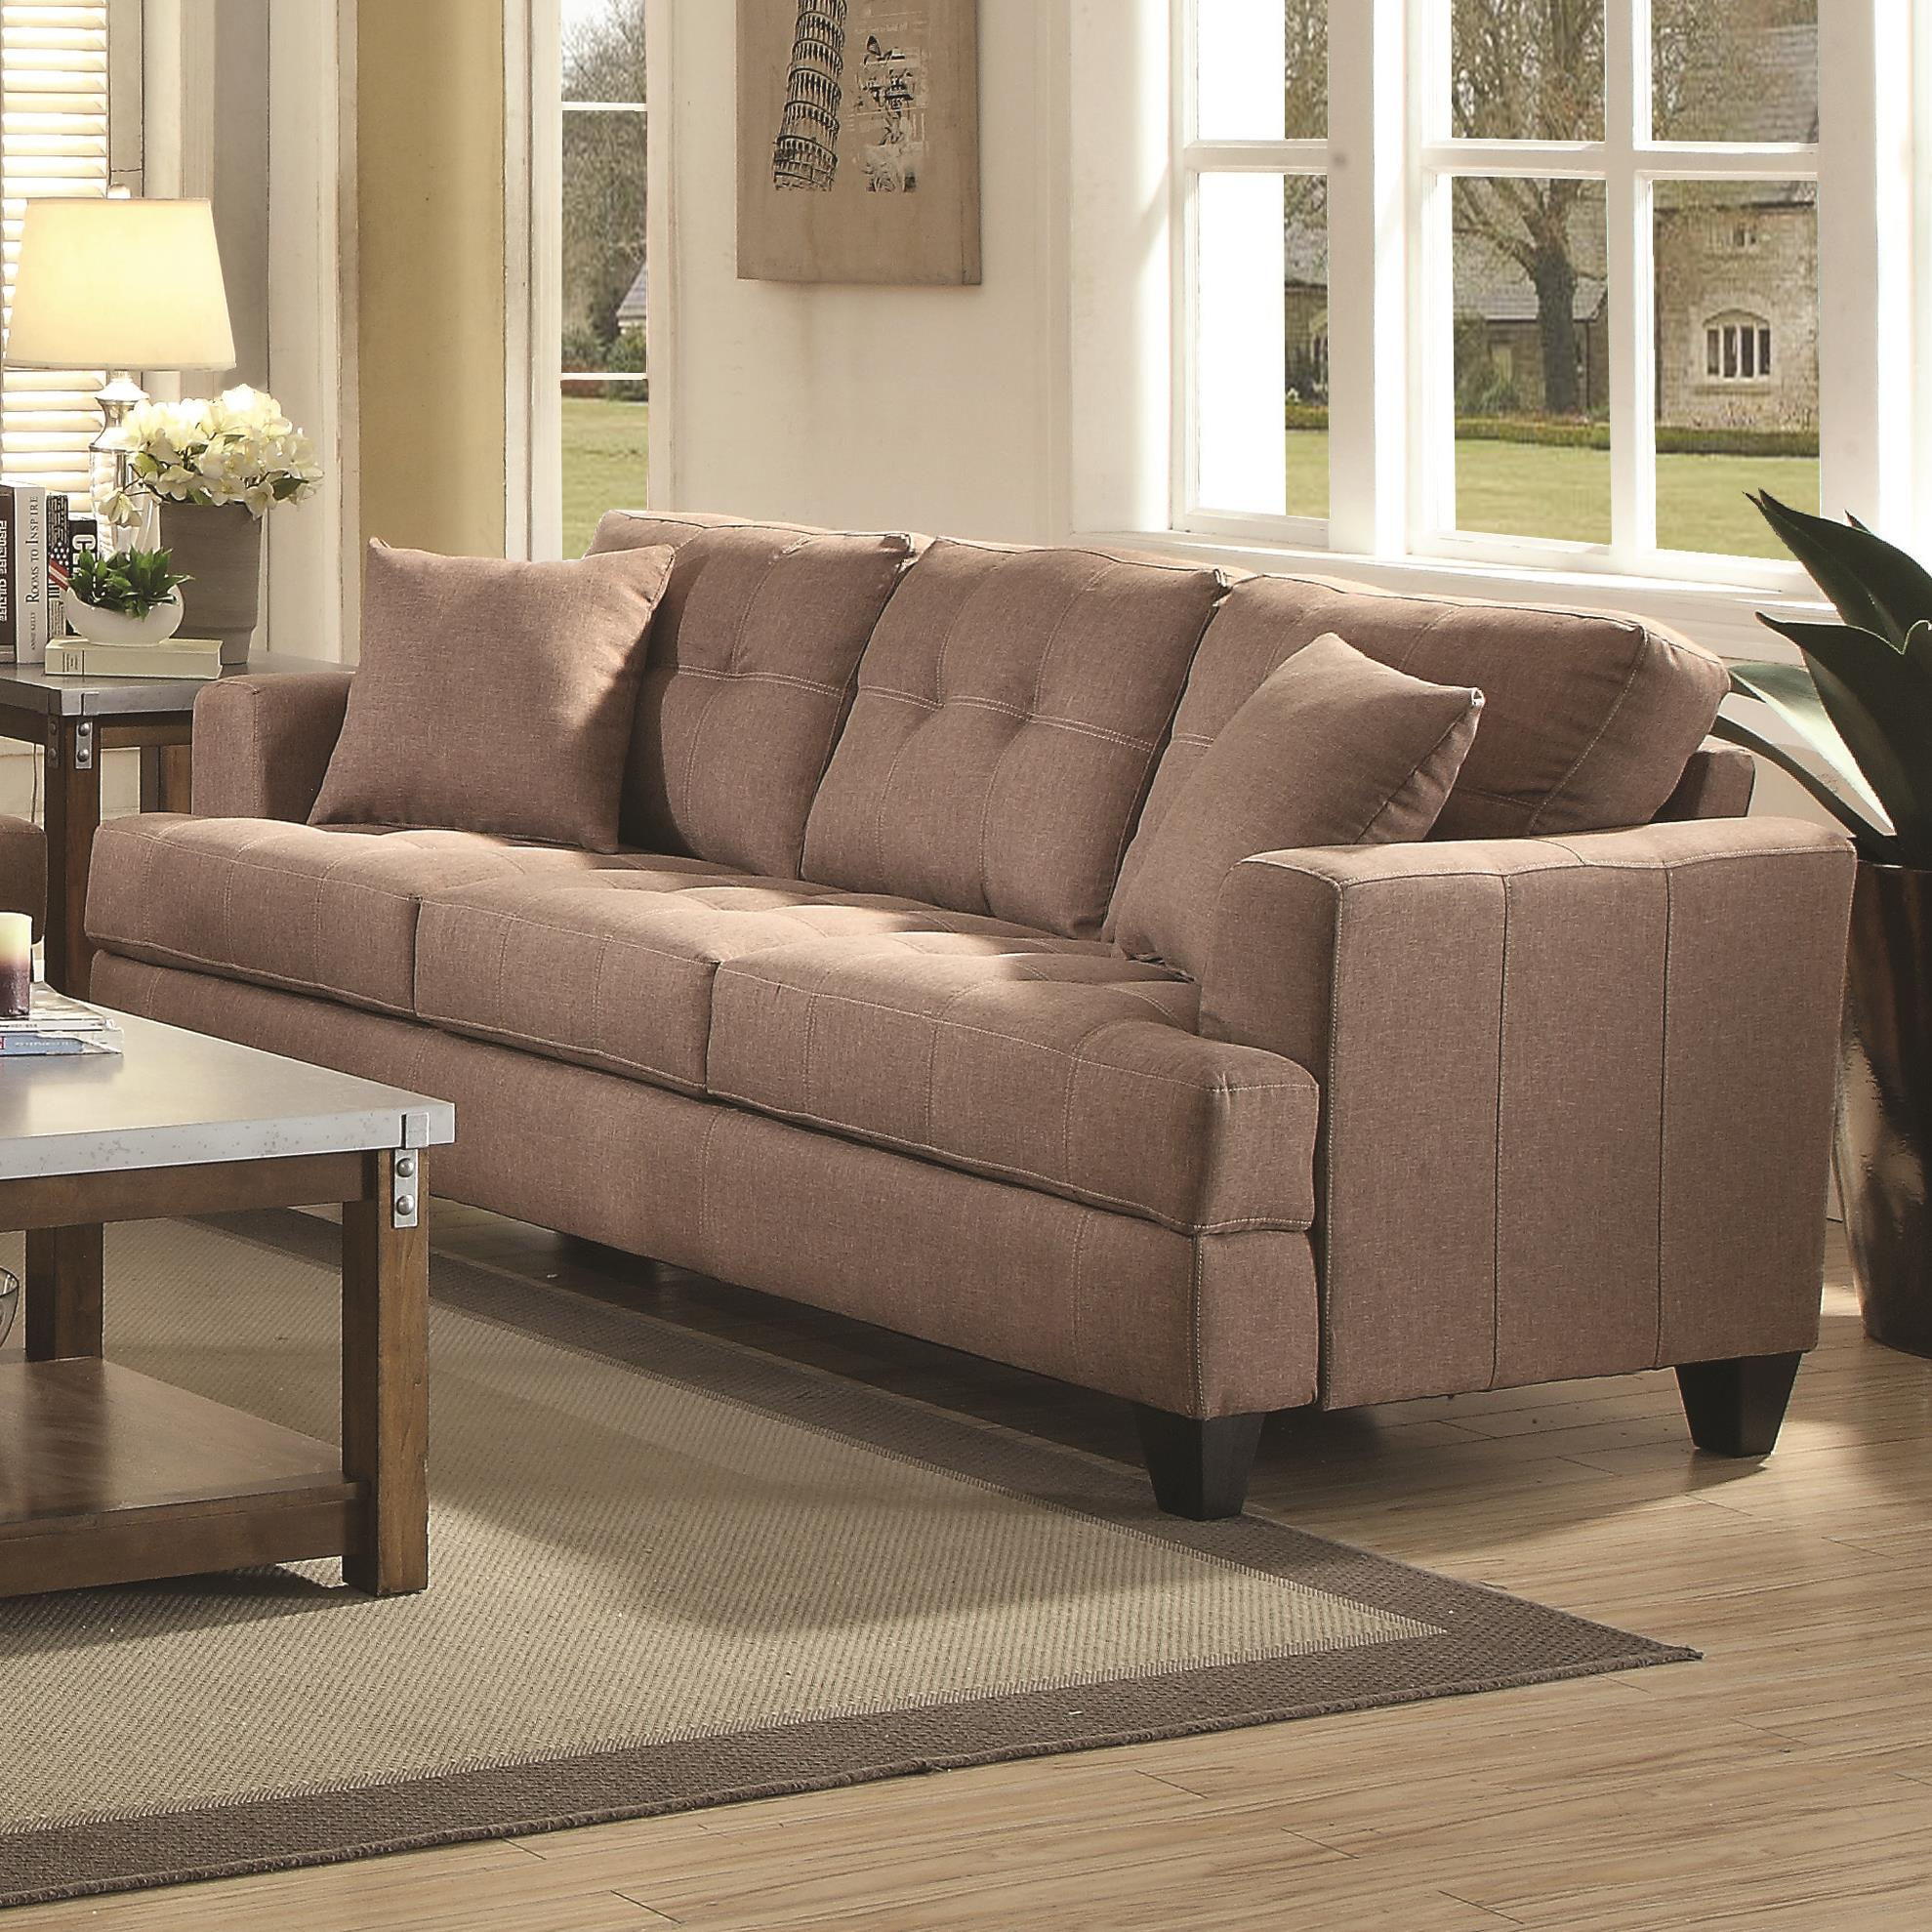 Coaster Samuel Sofa Sofa - Item Number: 505171